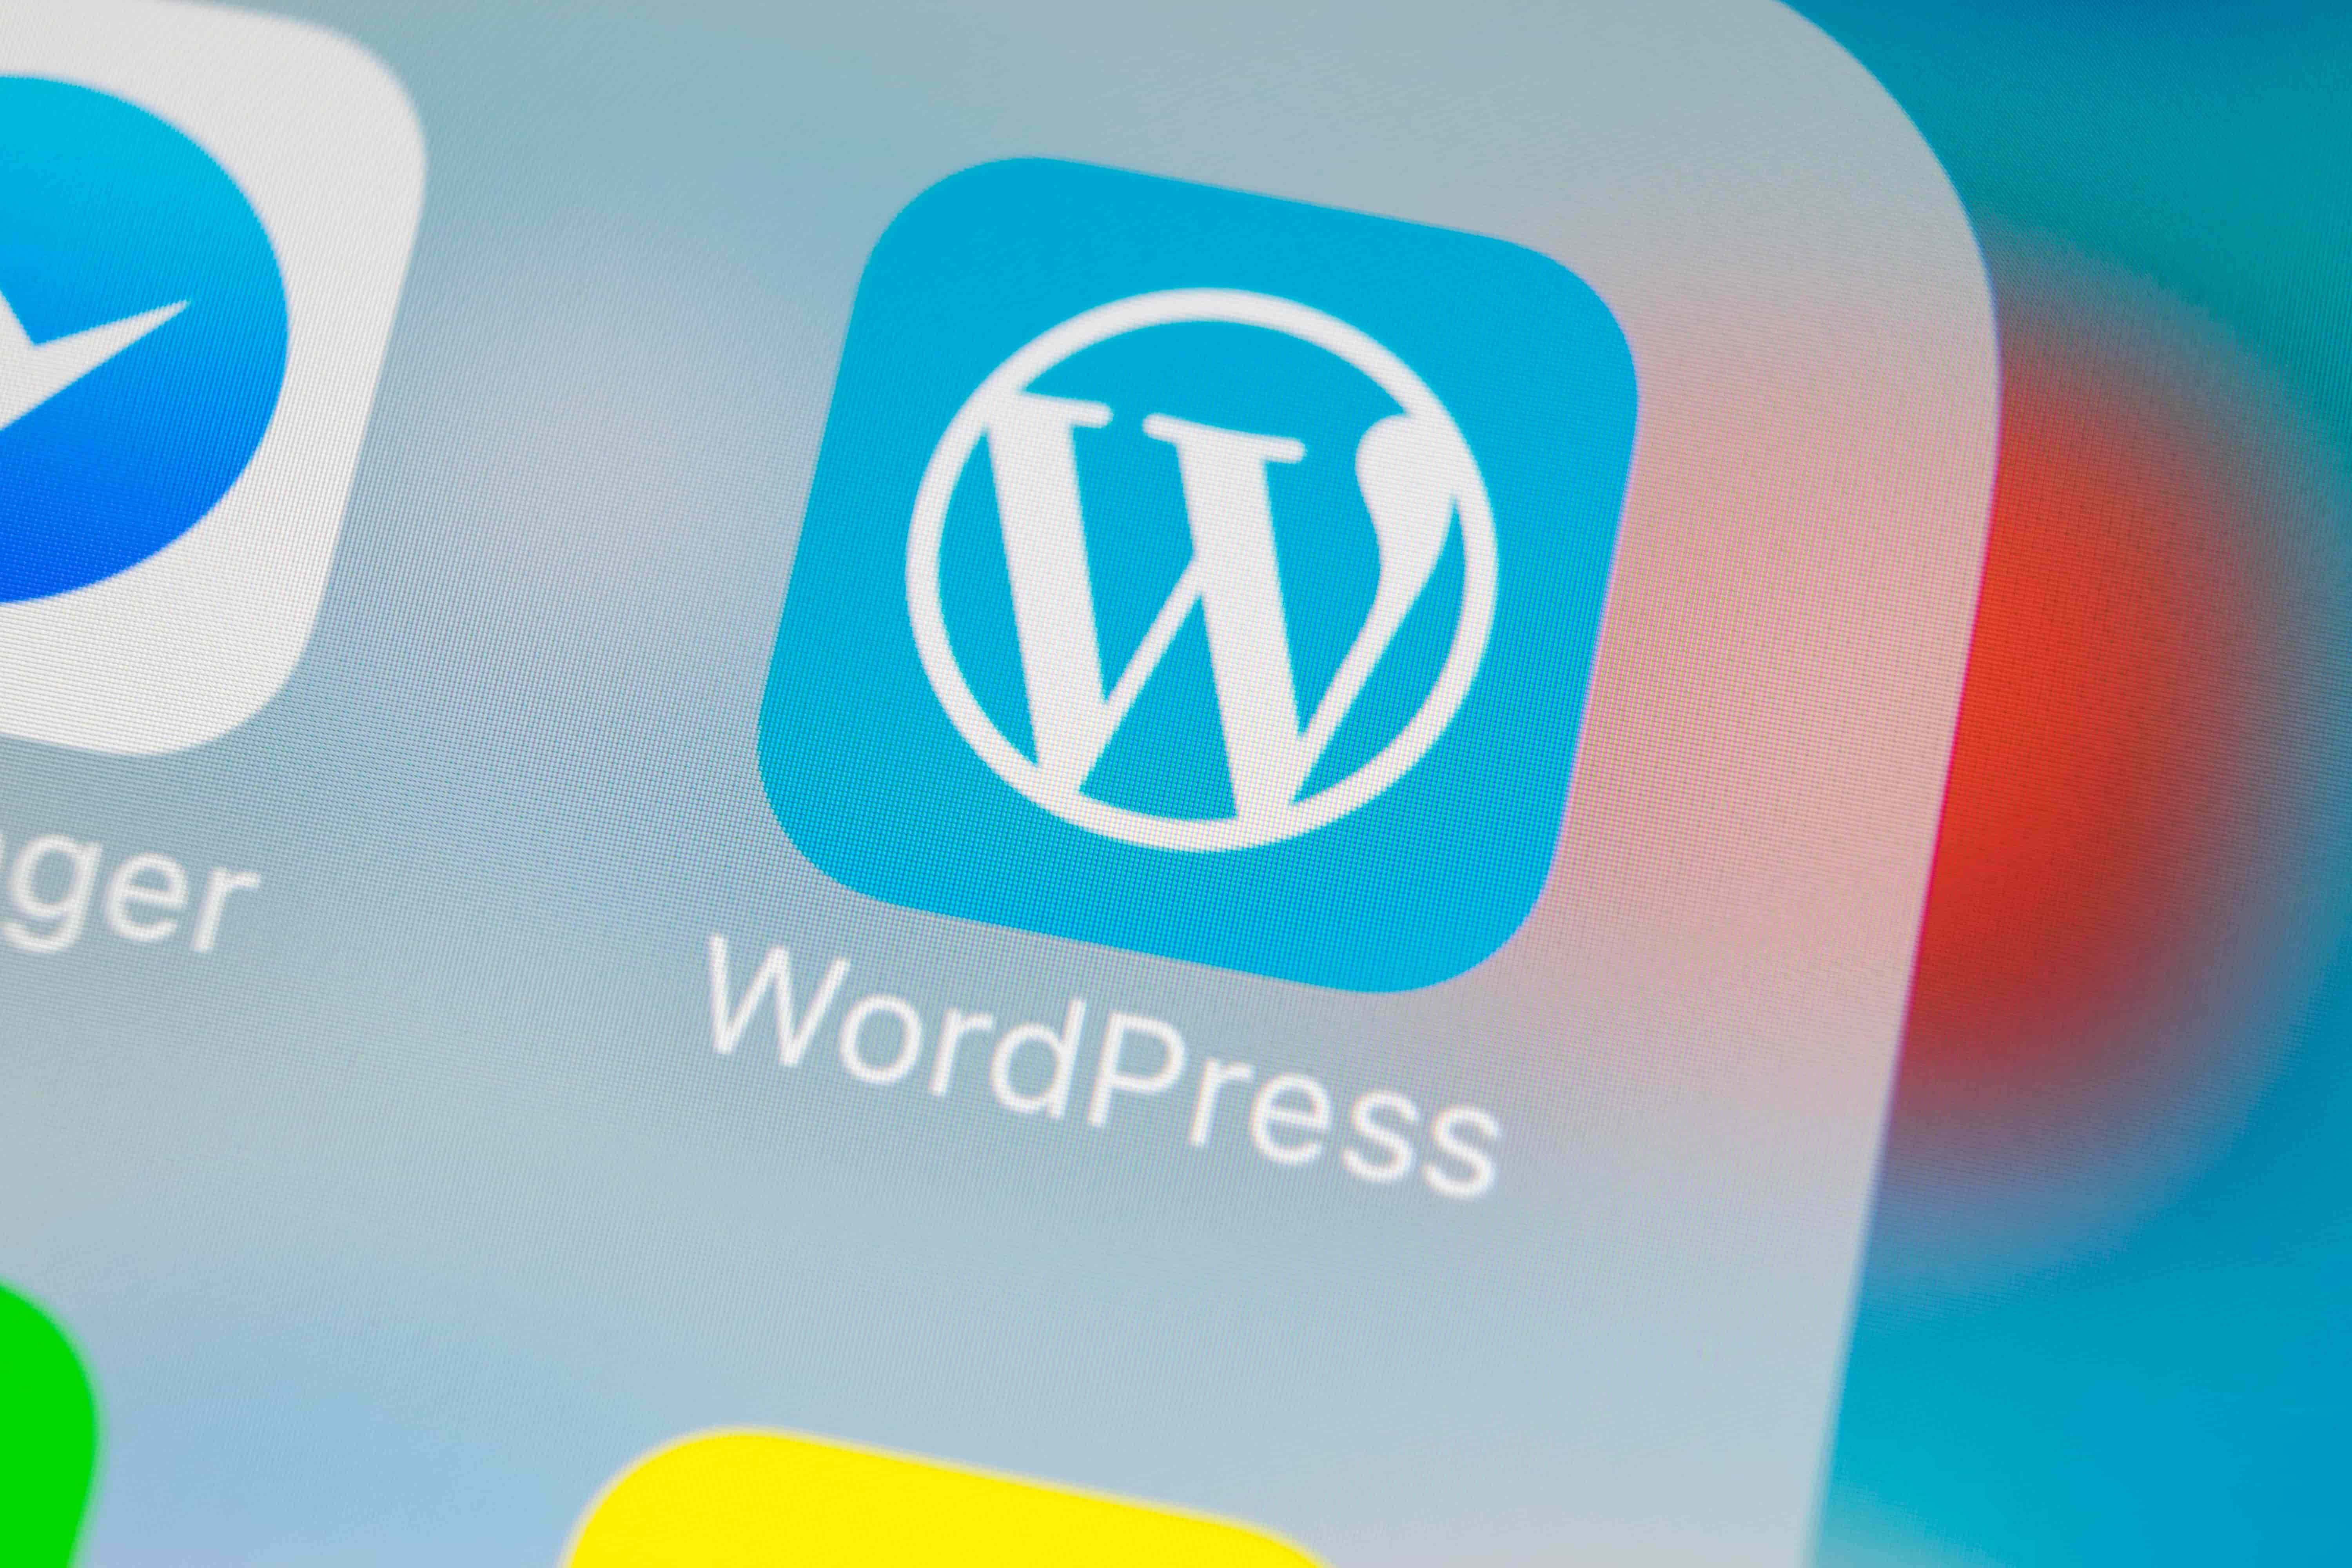 WordPress may soon introduce Paywall and subscription services